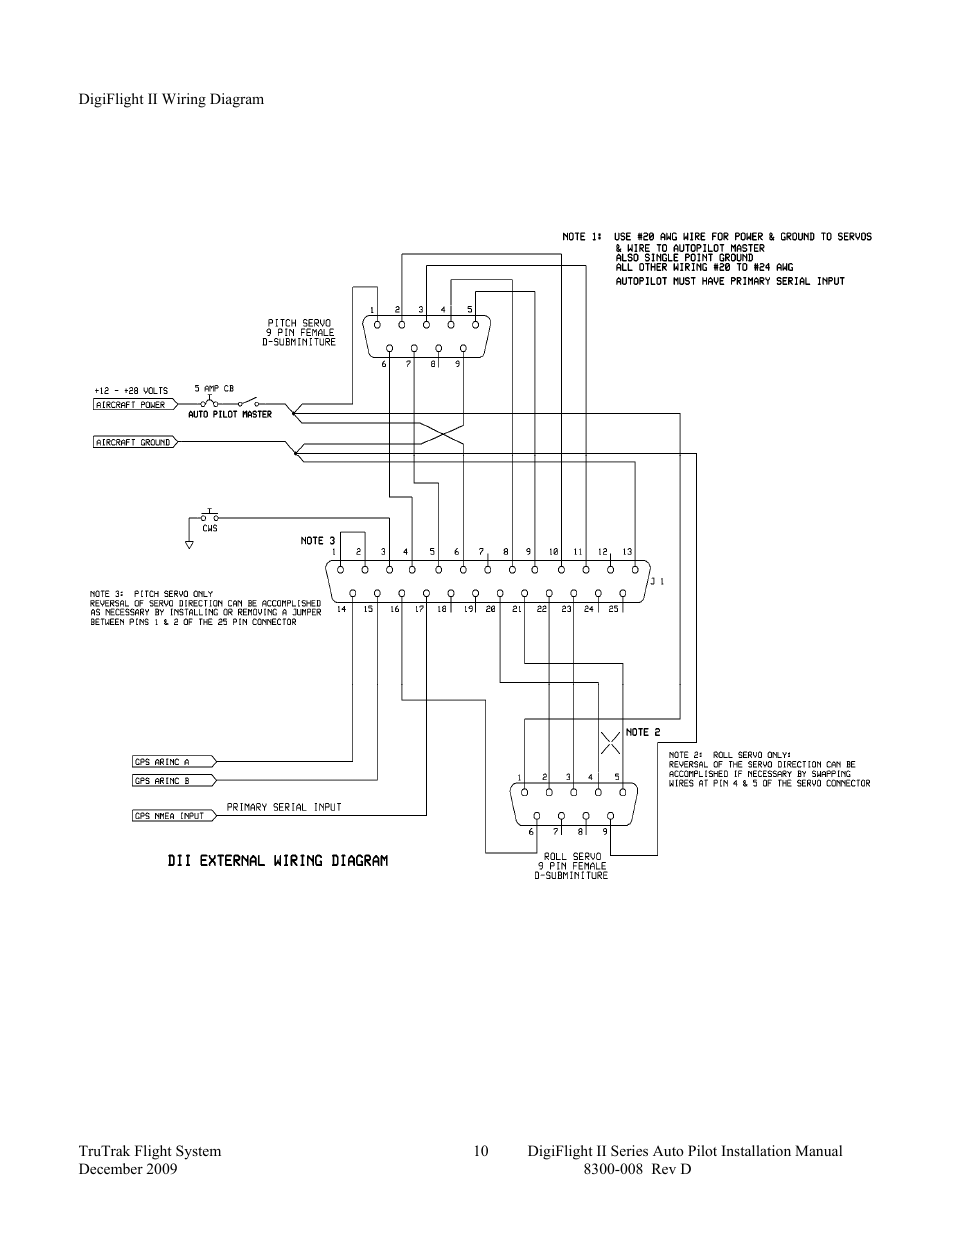 Garmin 3010c Wiring Diagram Schematic Diagrams Nuvi 128 Atx Connector Data Mapping 300c Demo